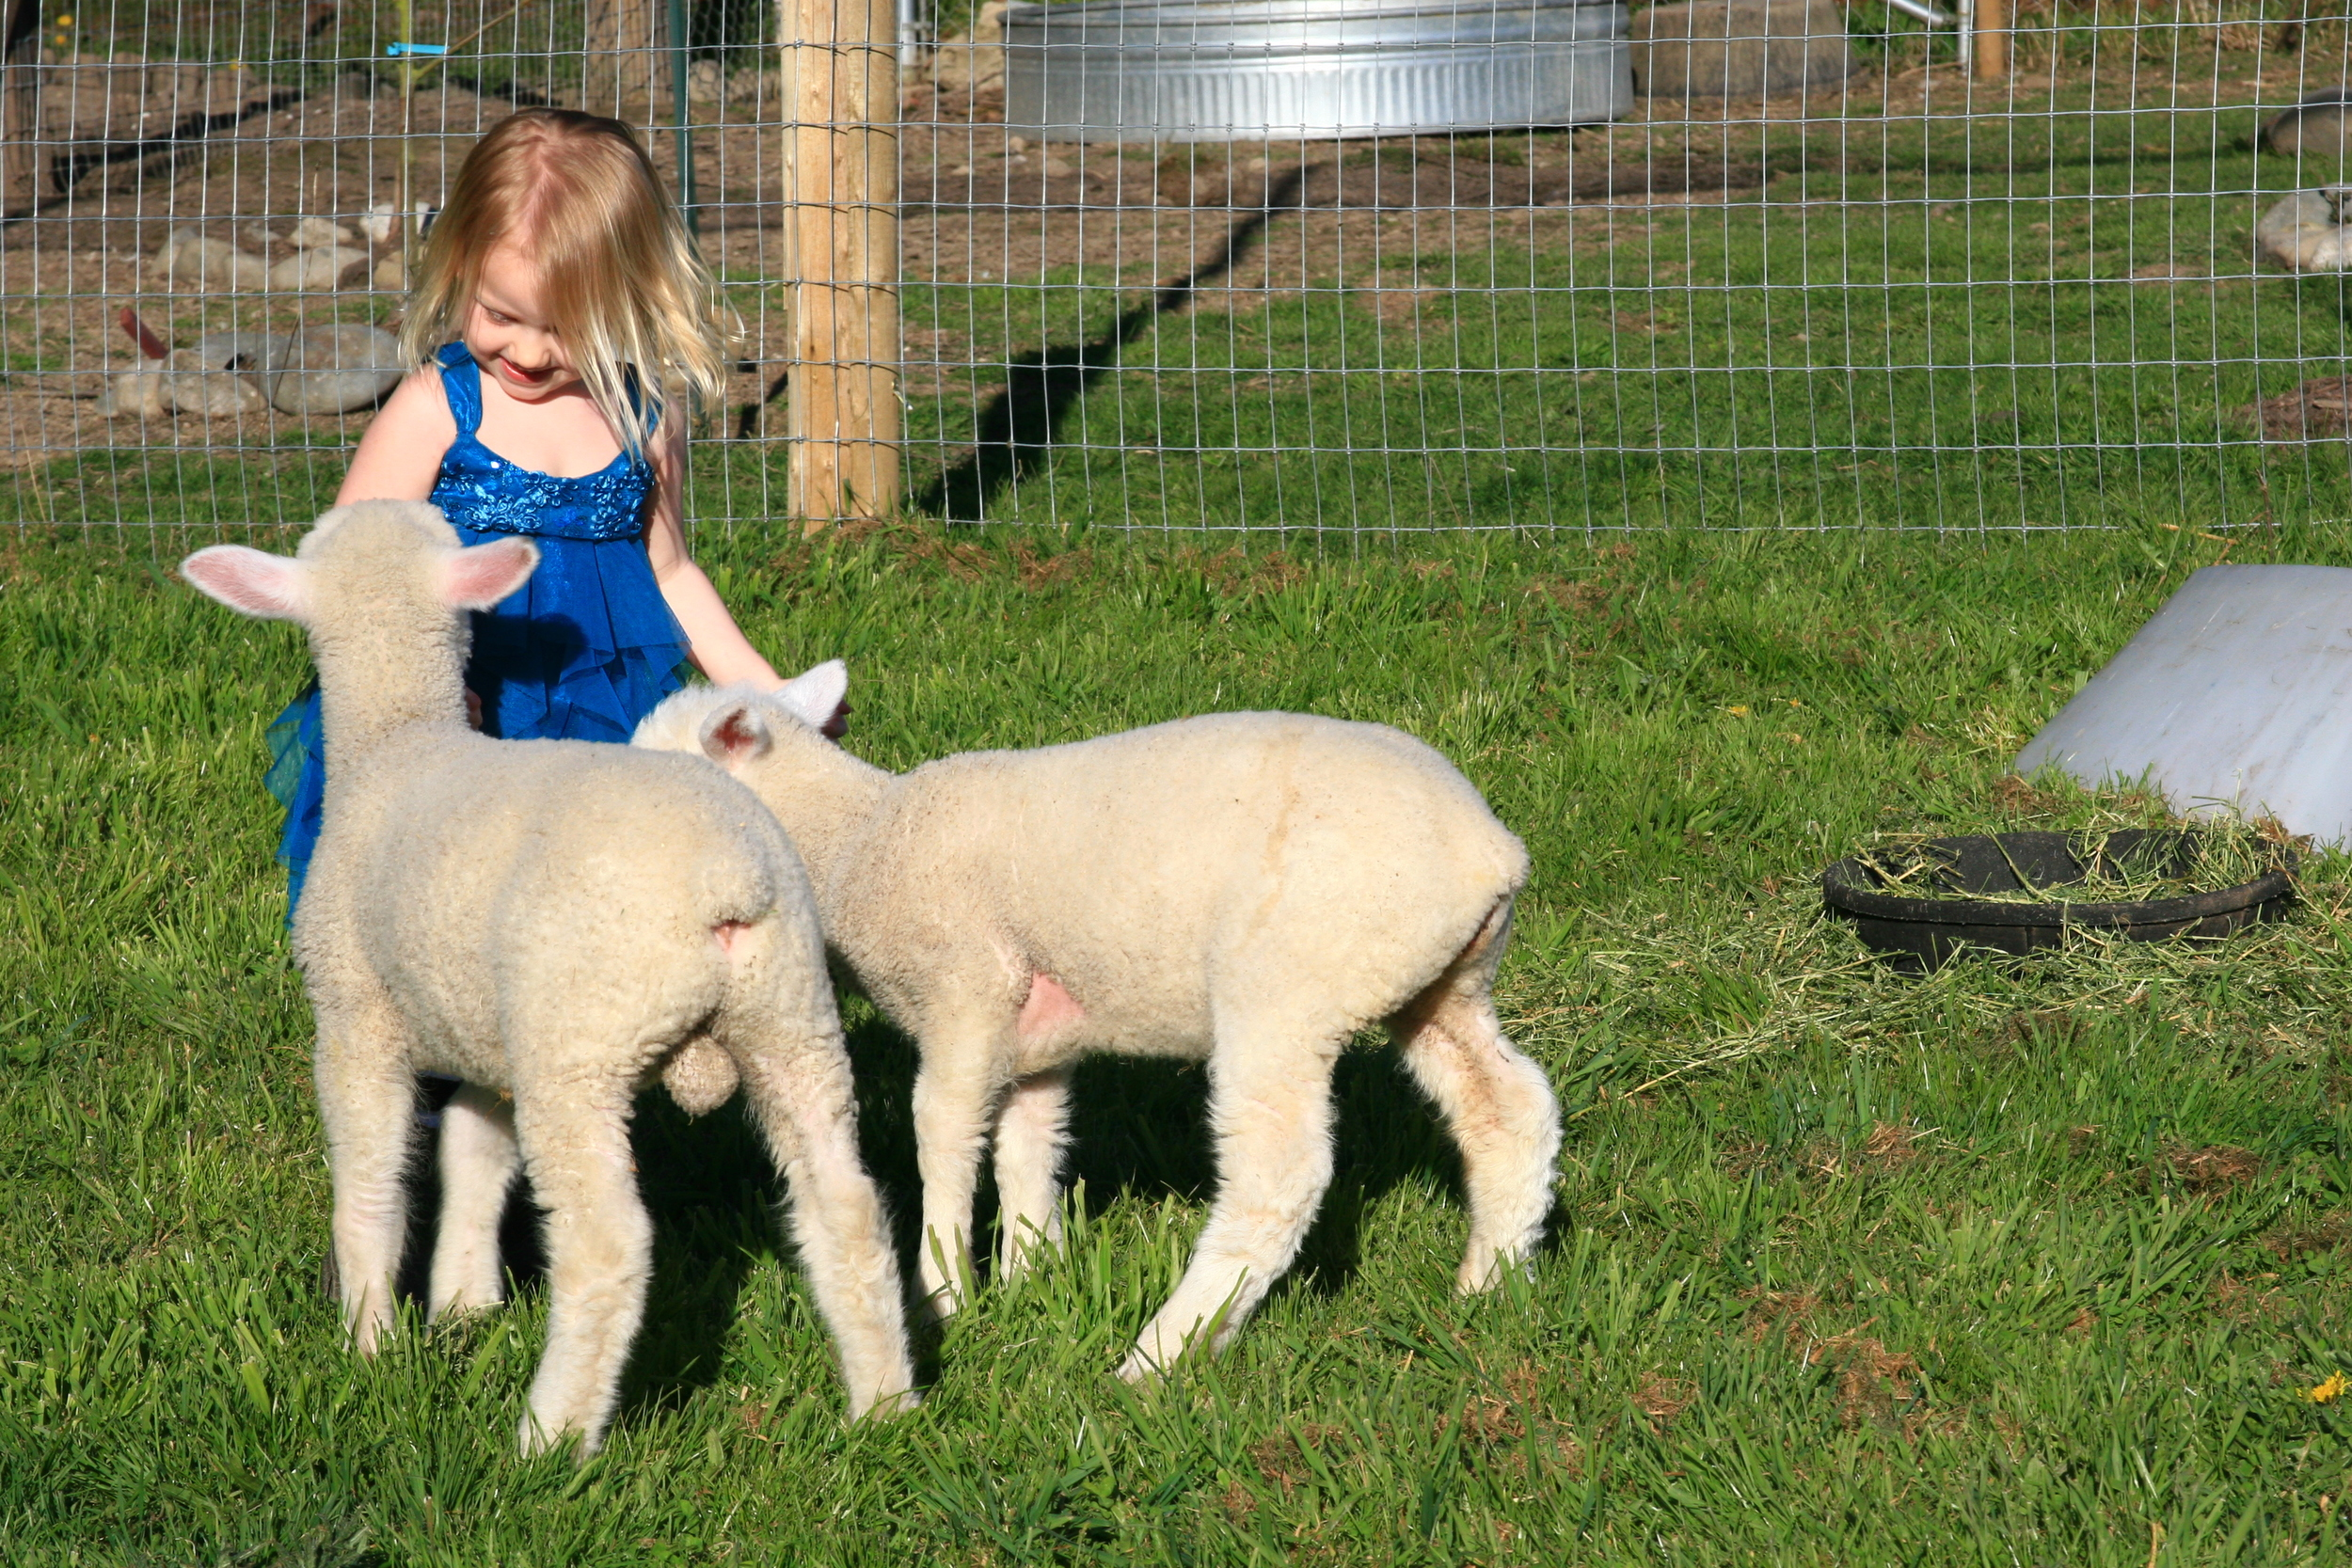 OUr youngest daughter with 2 bummer (bottle fed) lambs.